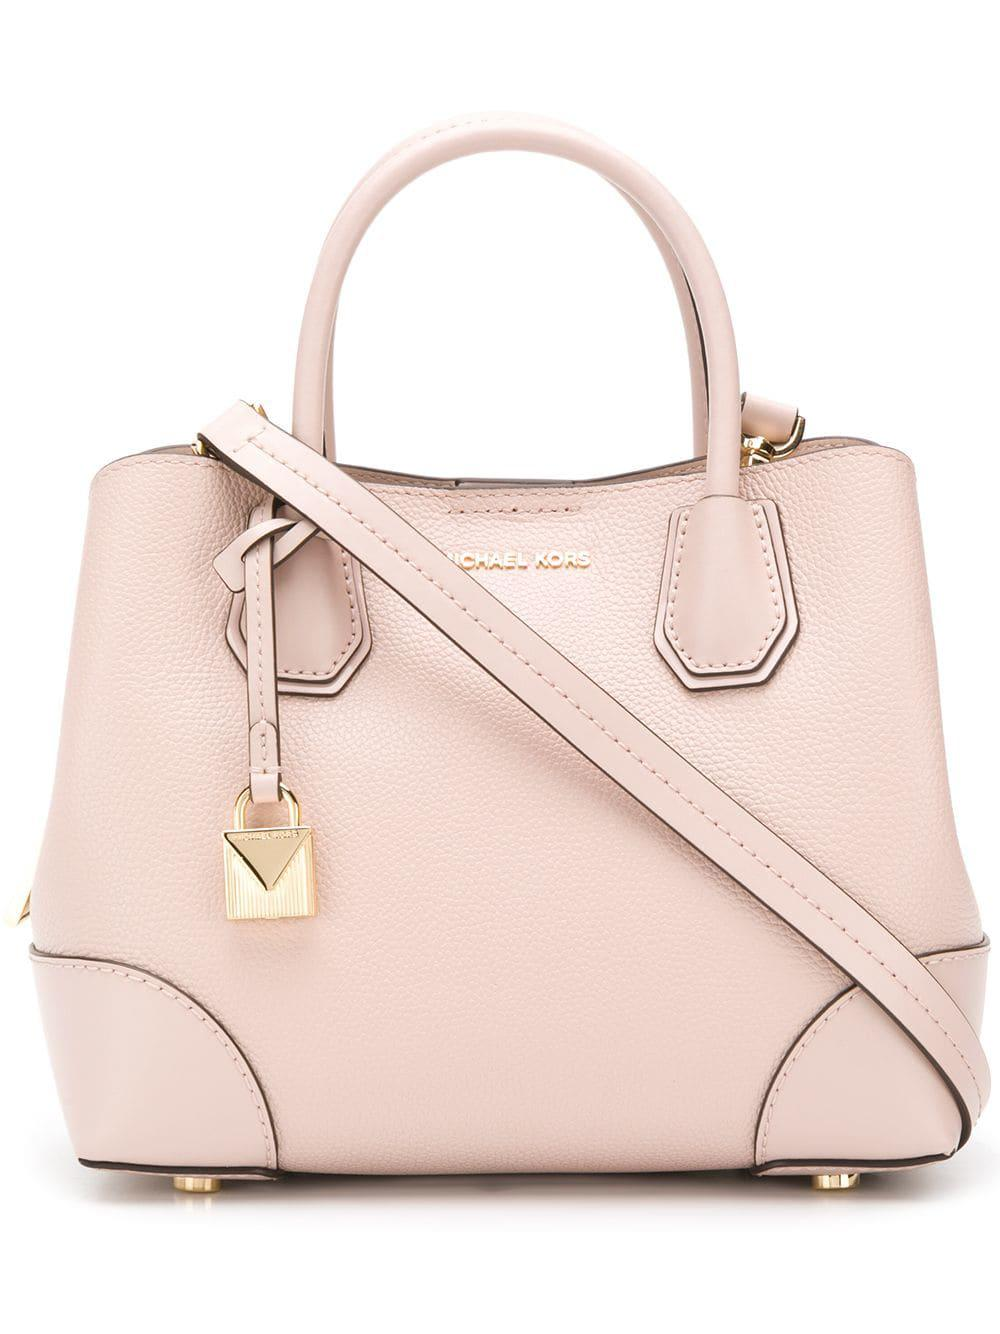 4b736984d094d4 MICHAEL Michael Kors. Women's Pink Mercer Gallery Leather Shoulder Bag